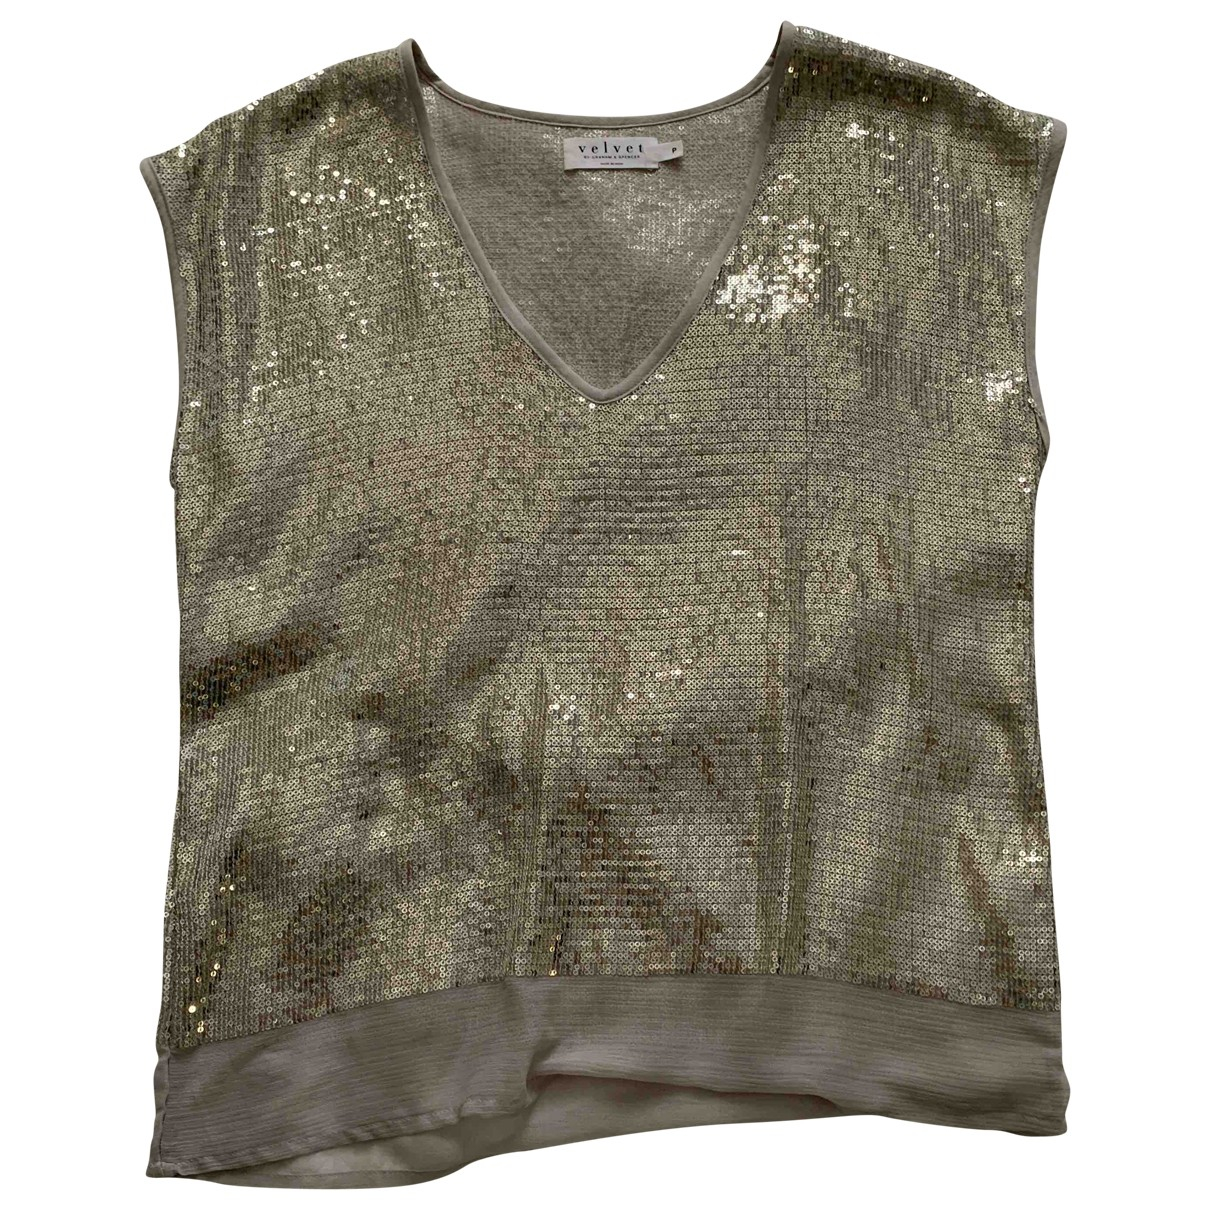 Velvet \N Gold Glitter  top for Women S International